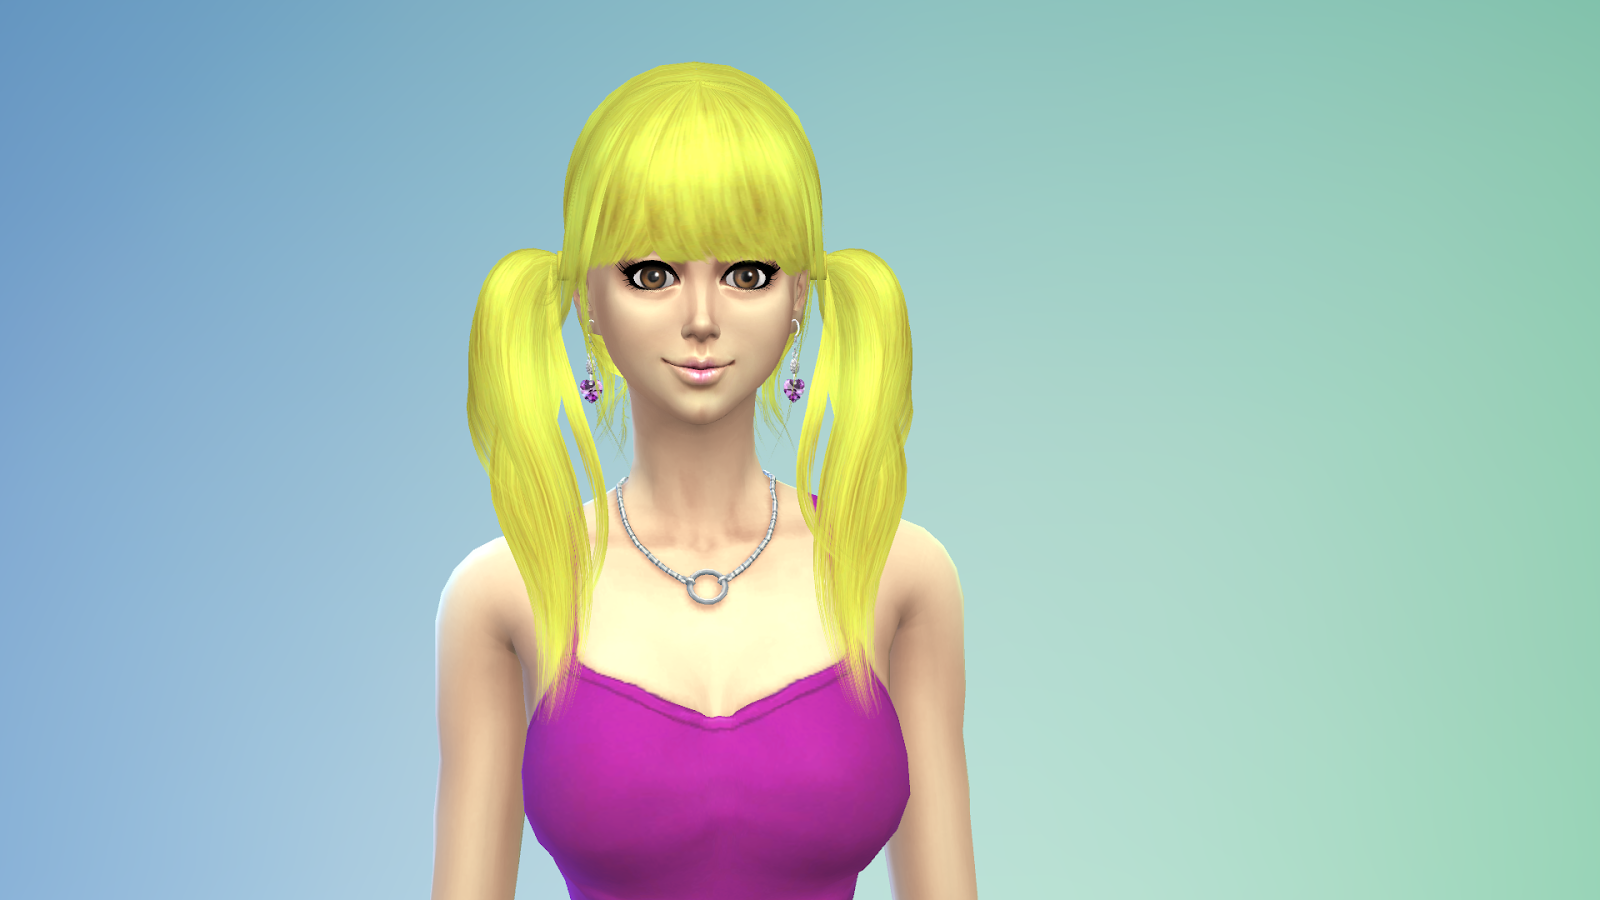 ... & Lucy Heartfilia (Fairy Tail) - The Sims 4 - Pirralho do Game